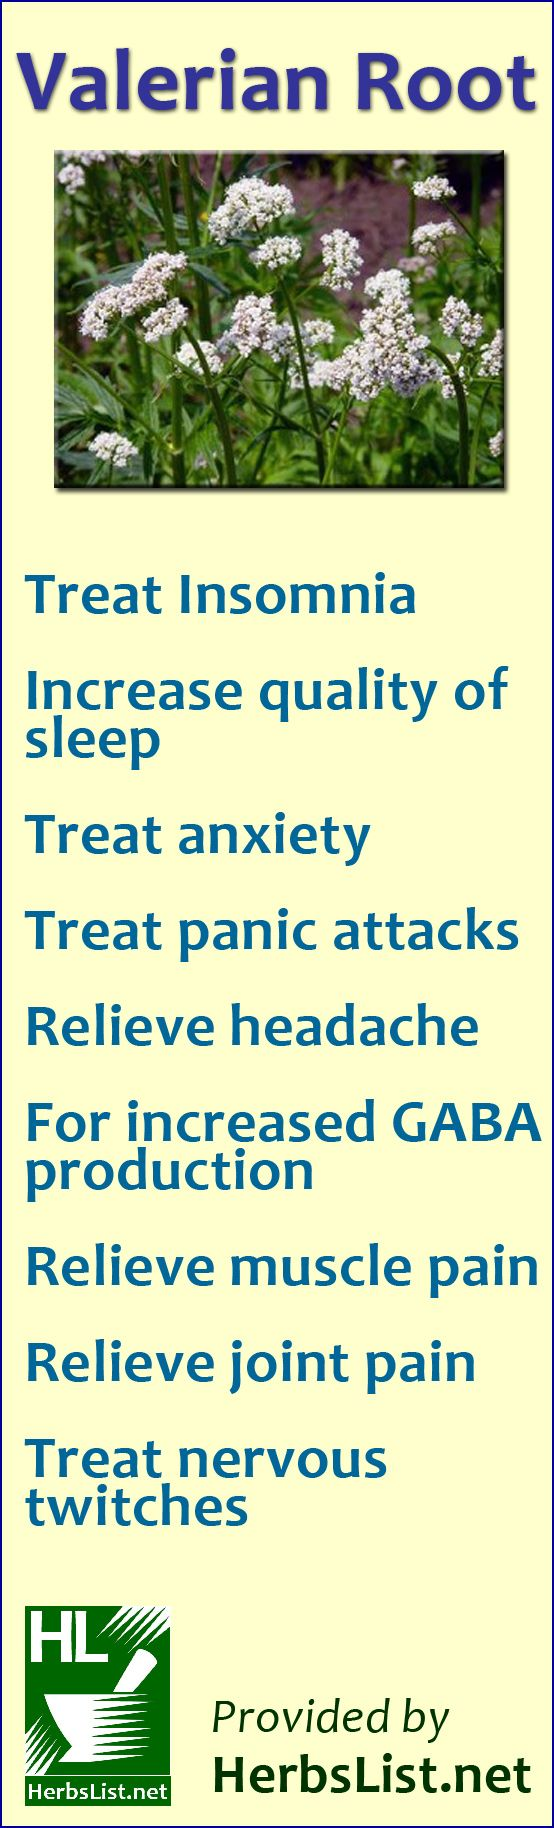 Valerian root is helpful for treating insomnia and anxiety. www.harmony4health.net